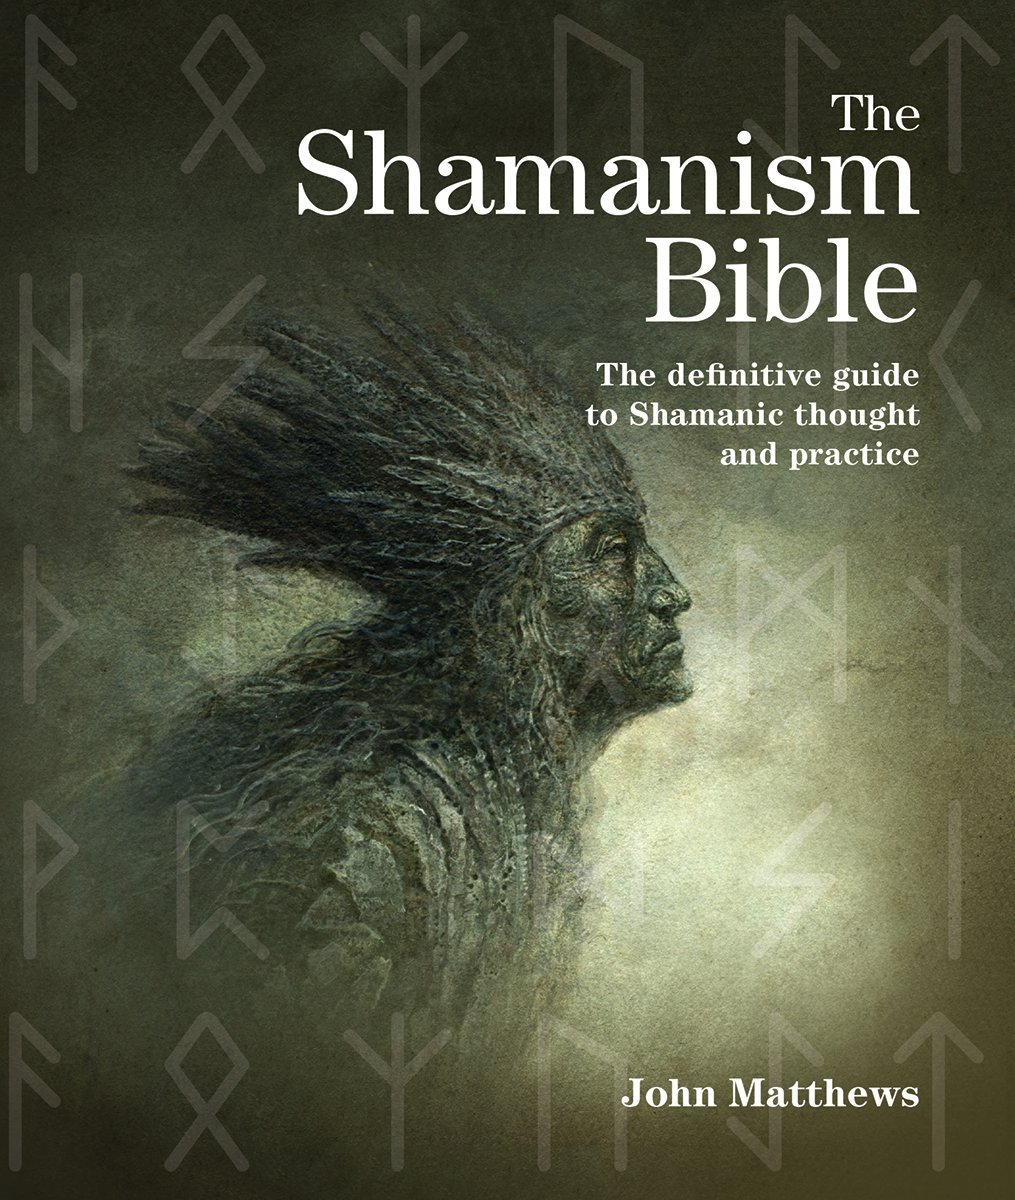 The shamanism bible the definitive guide to shamanic thought and practice subject bible john matthews 9781770854673 amazon com books